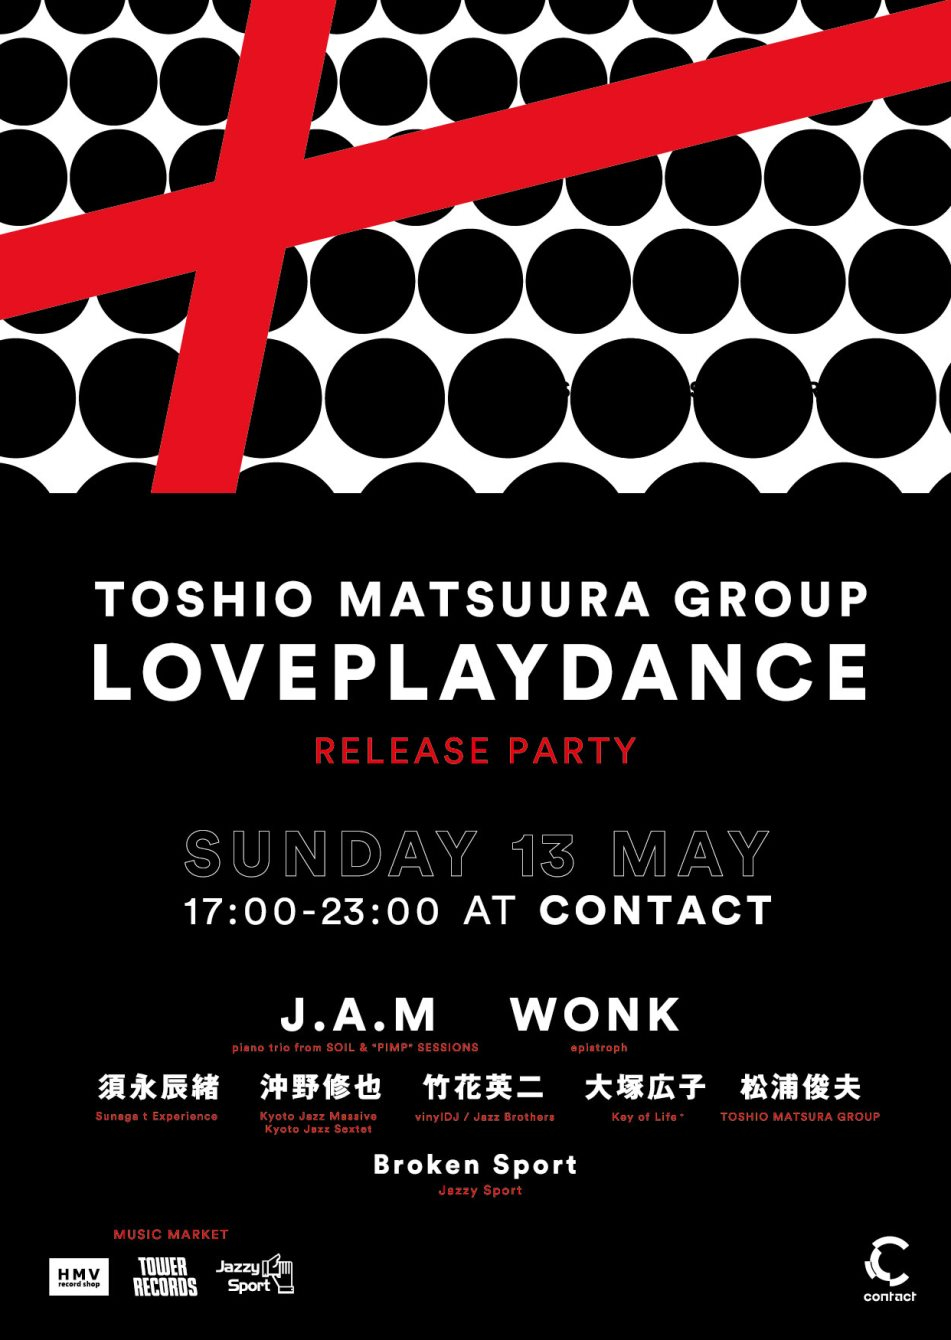 """Toshio Matsuura Group """"LOVEPLAYDANCE"""" Release Party - Flyer back"""